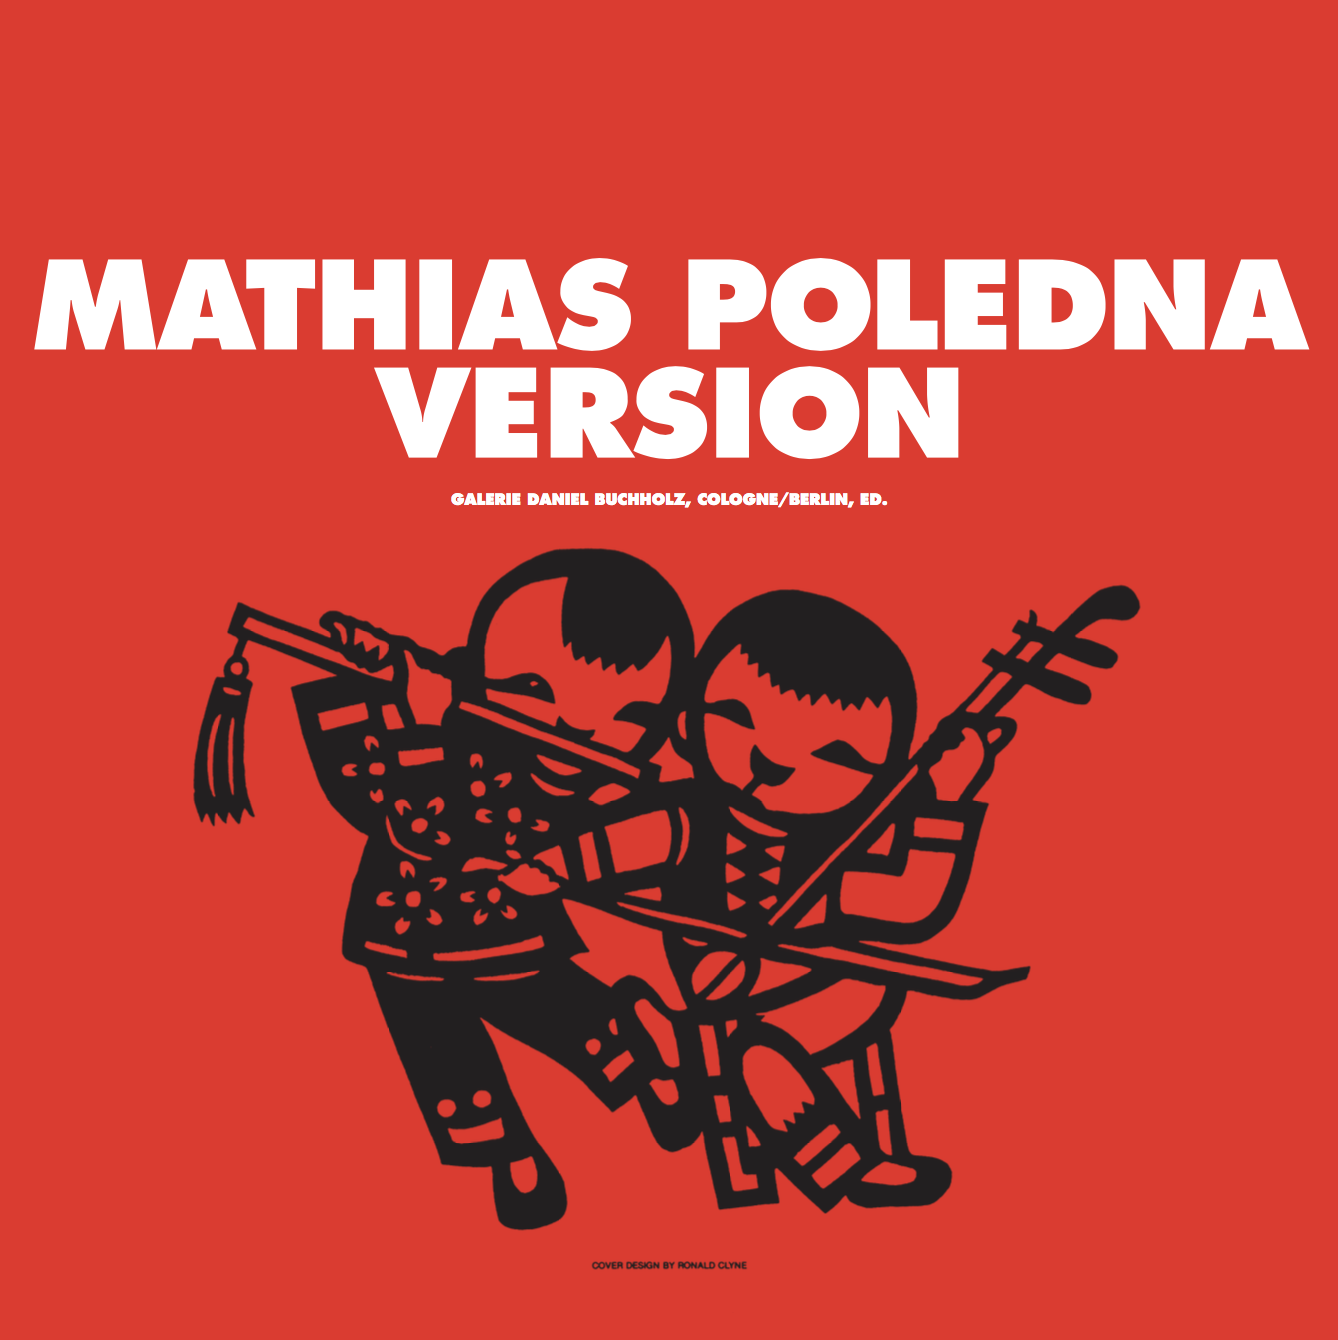 "Mathias Poledna – ""Version"" 2010, 52 pages, fully illustrated, Owrps, 31,4 x 31,4 cm, with supplement booklet, 25,4 x 25,4 cm Edition 800 Euro 25,- – This new publication documents Mathias Poledna's 2004 film installation ""Version"". The publication features a monographic essay by Juliane Rebentisch on the work and its companion piece, ""Sufferers' Version"". Conceived and designed by Mathias Poledna the publication takes on the form of a double LP-sleeve with an insert of large-scale plates and a supplementary booklet. The cover motive is a tribute to Ronald Clyne, the seminal designer of album sleeves for the US-label Folkways Records. A numbered edition of 10+1 is signed by the artist and contains a 12"" dubplate especially produced for this occasion."